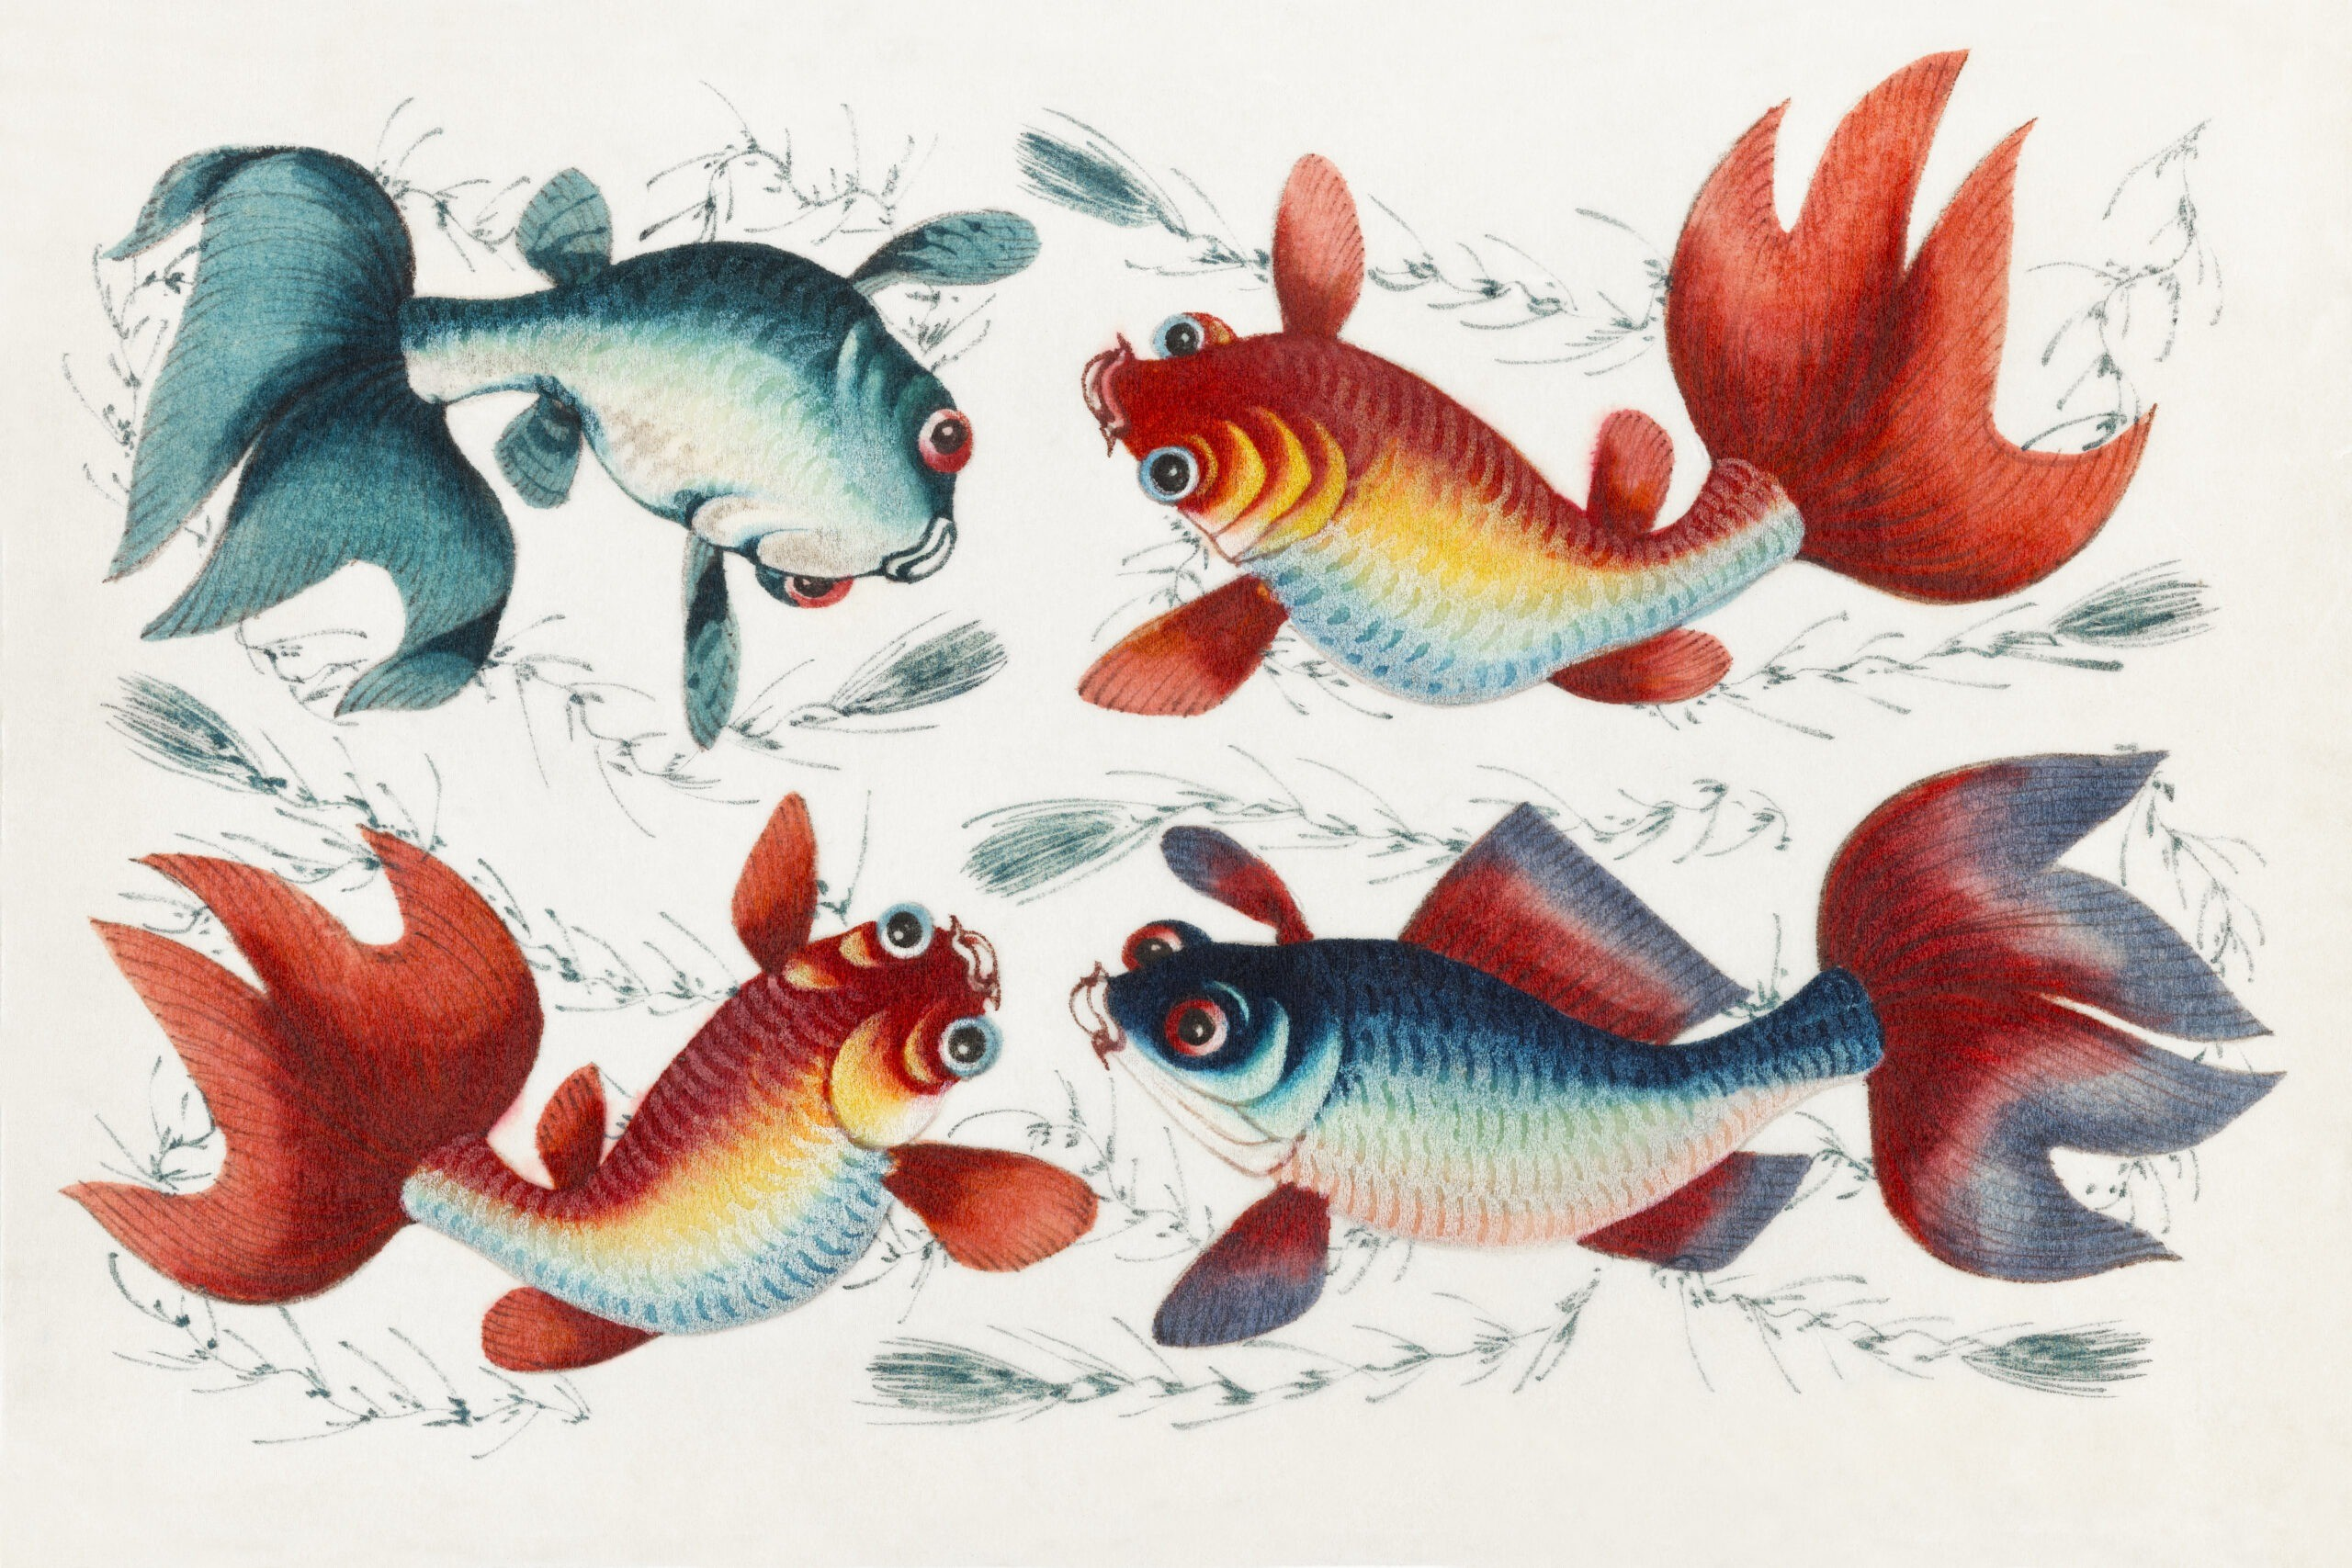 Chinese painting featuring two gold and two silver fish (ca.1800–1899) from the Miriam and Ira D. Wallach Division of Art, Prints and Photographs: Art & Architecture Collection. Original from the New York Public Library. Digitally enhanced by rawpixel.